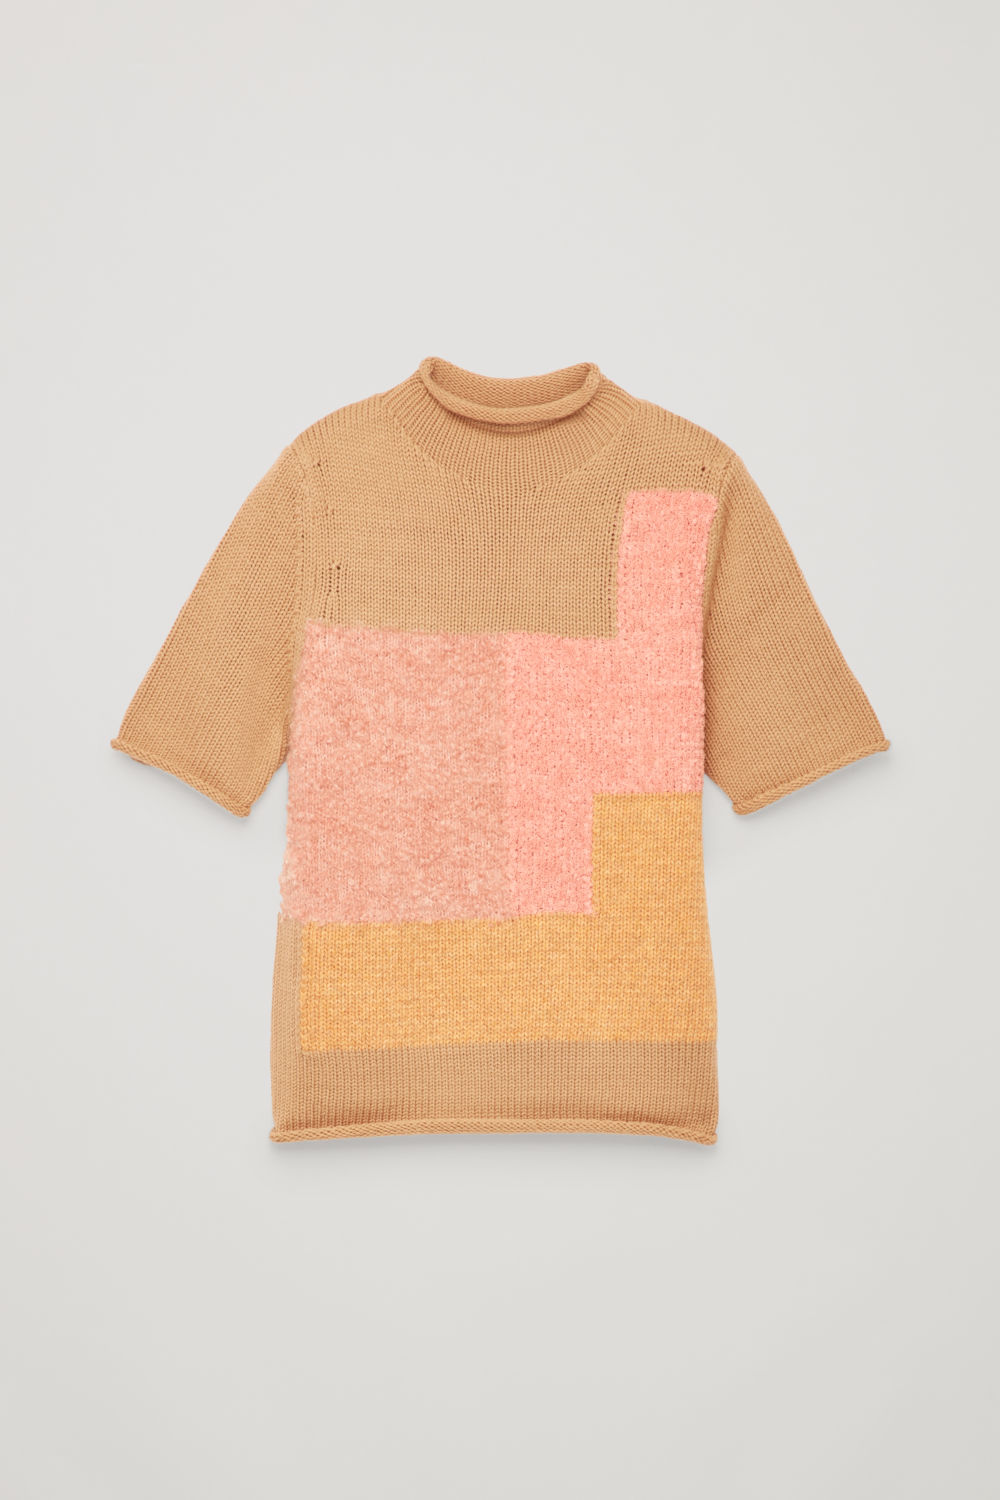 PATCHWORK WOOL-KNIT TOP